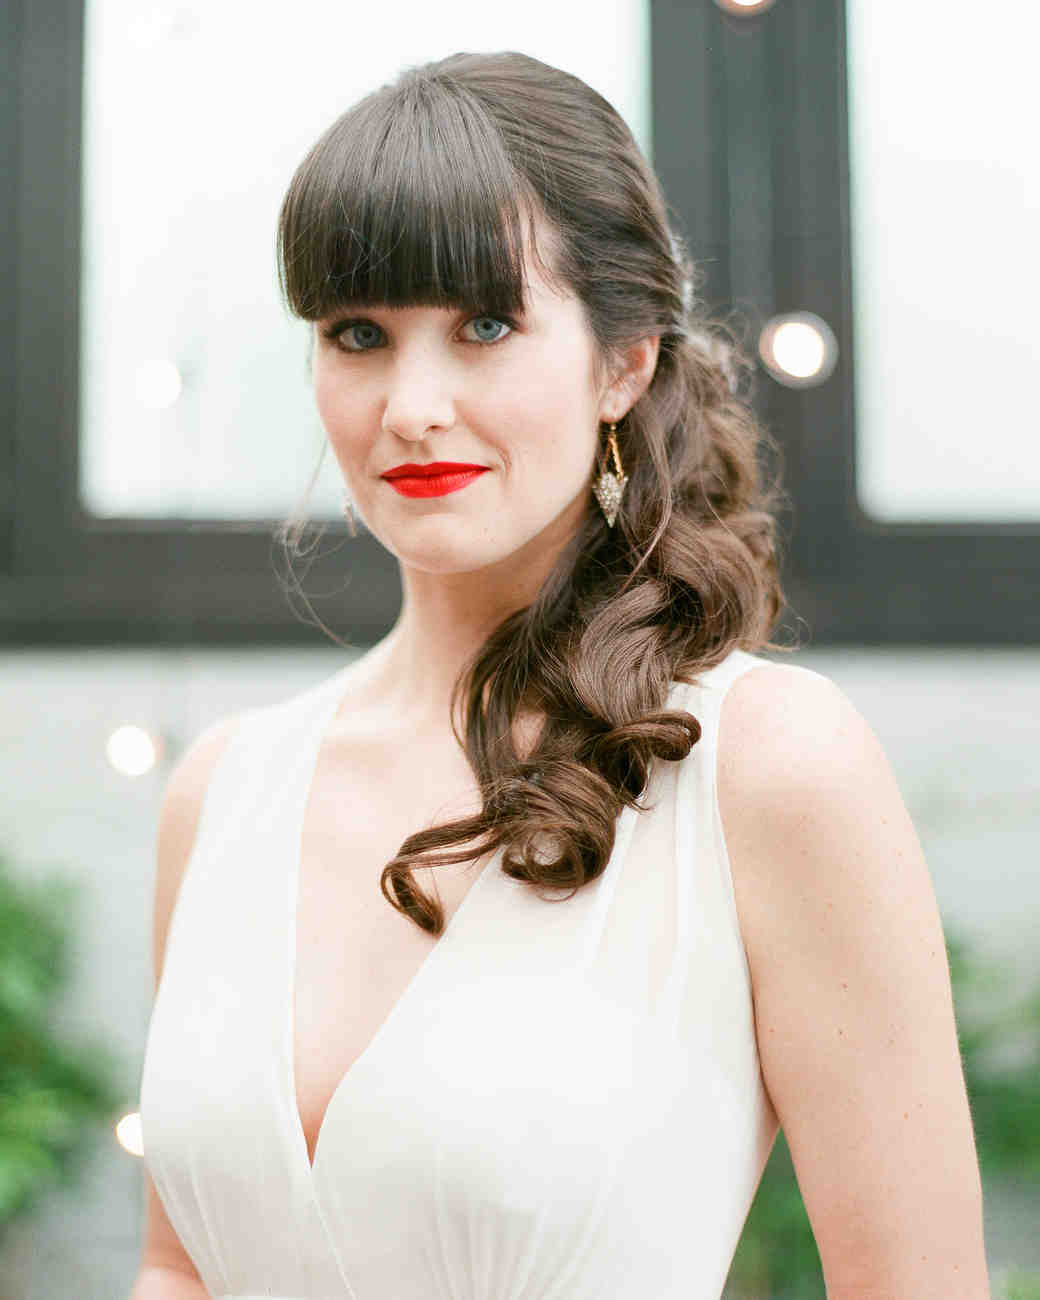 14 pinterest-worthy wedding hairstyles for curly hair | martha